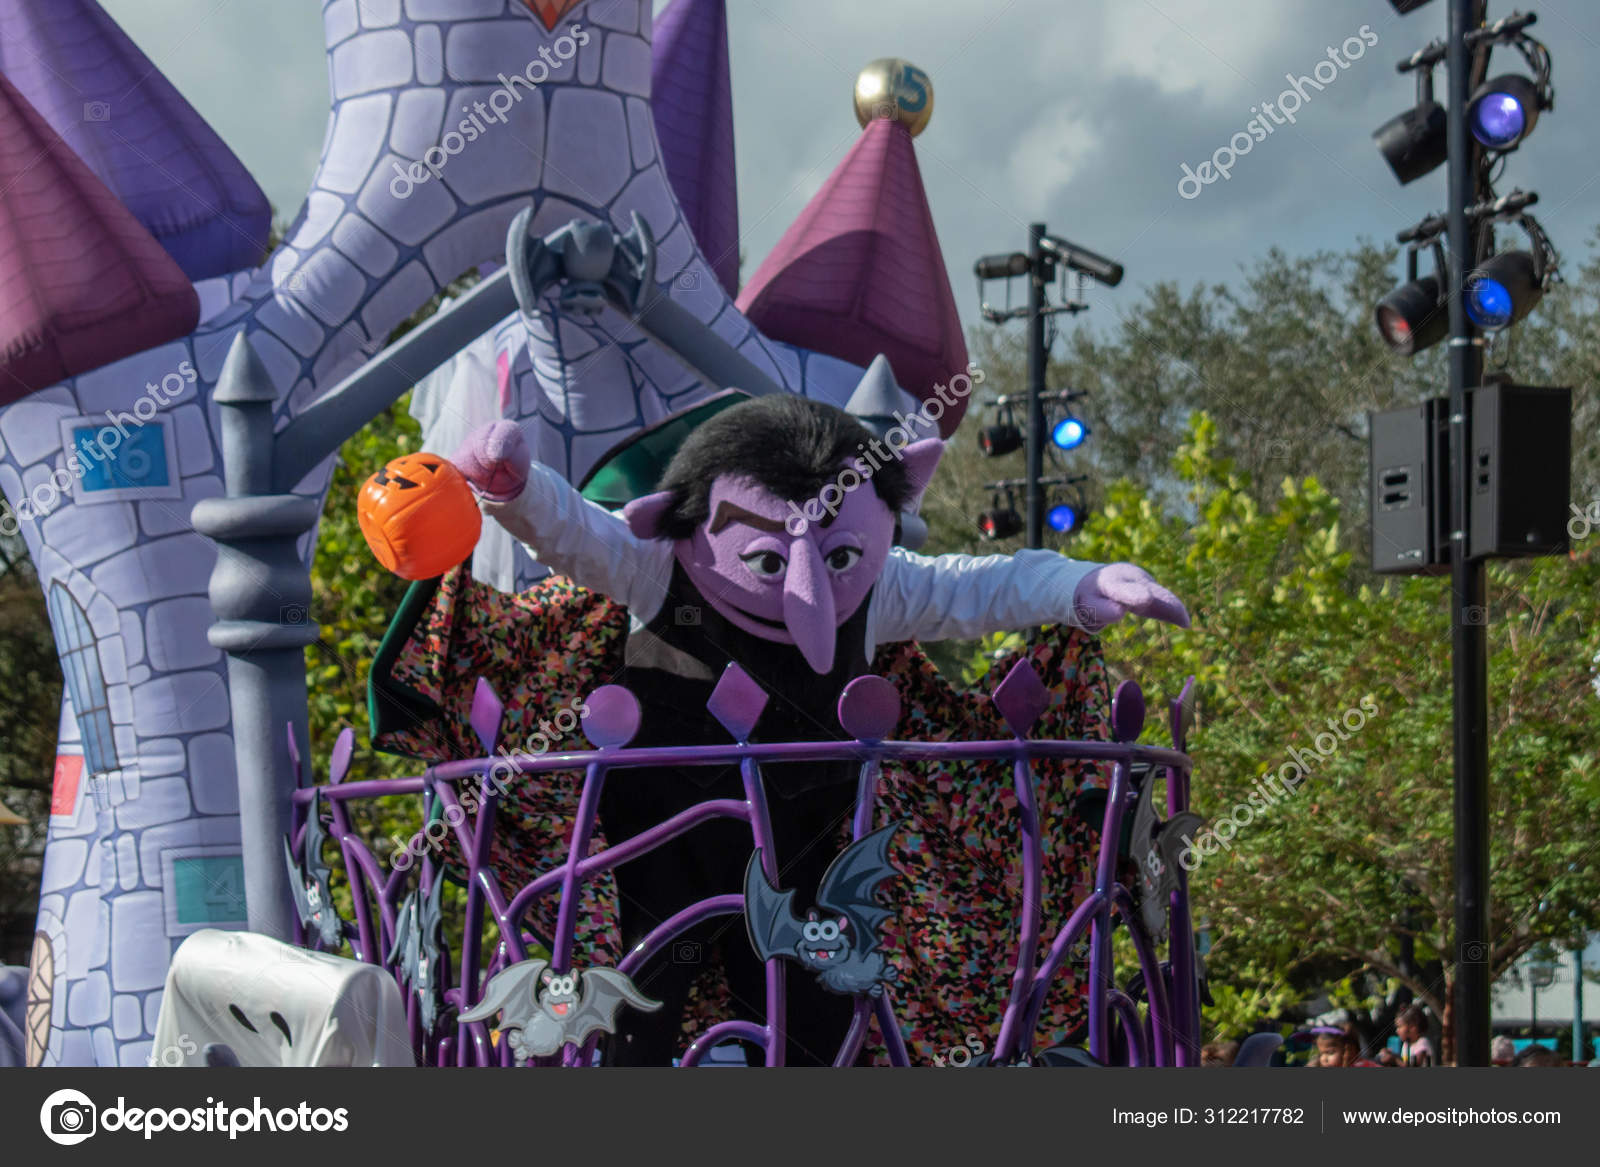 Orlando Florida October 2019 Count Von Count Halloween